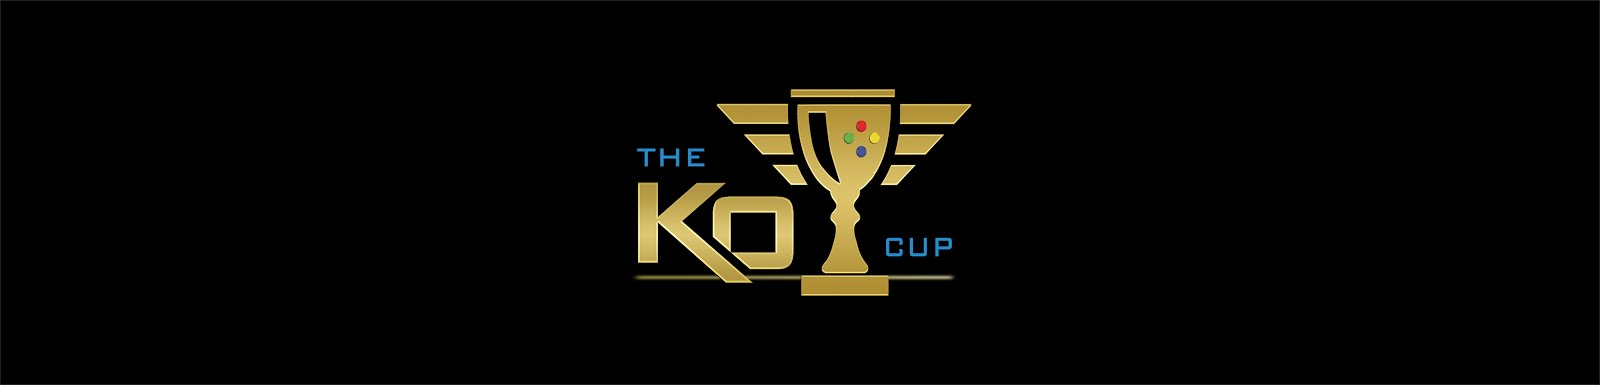 The KO Cup